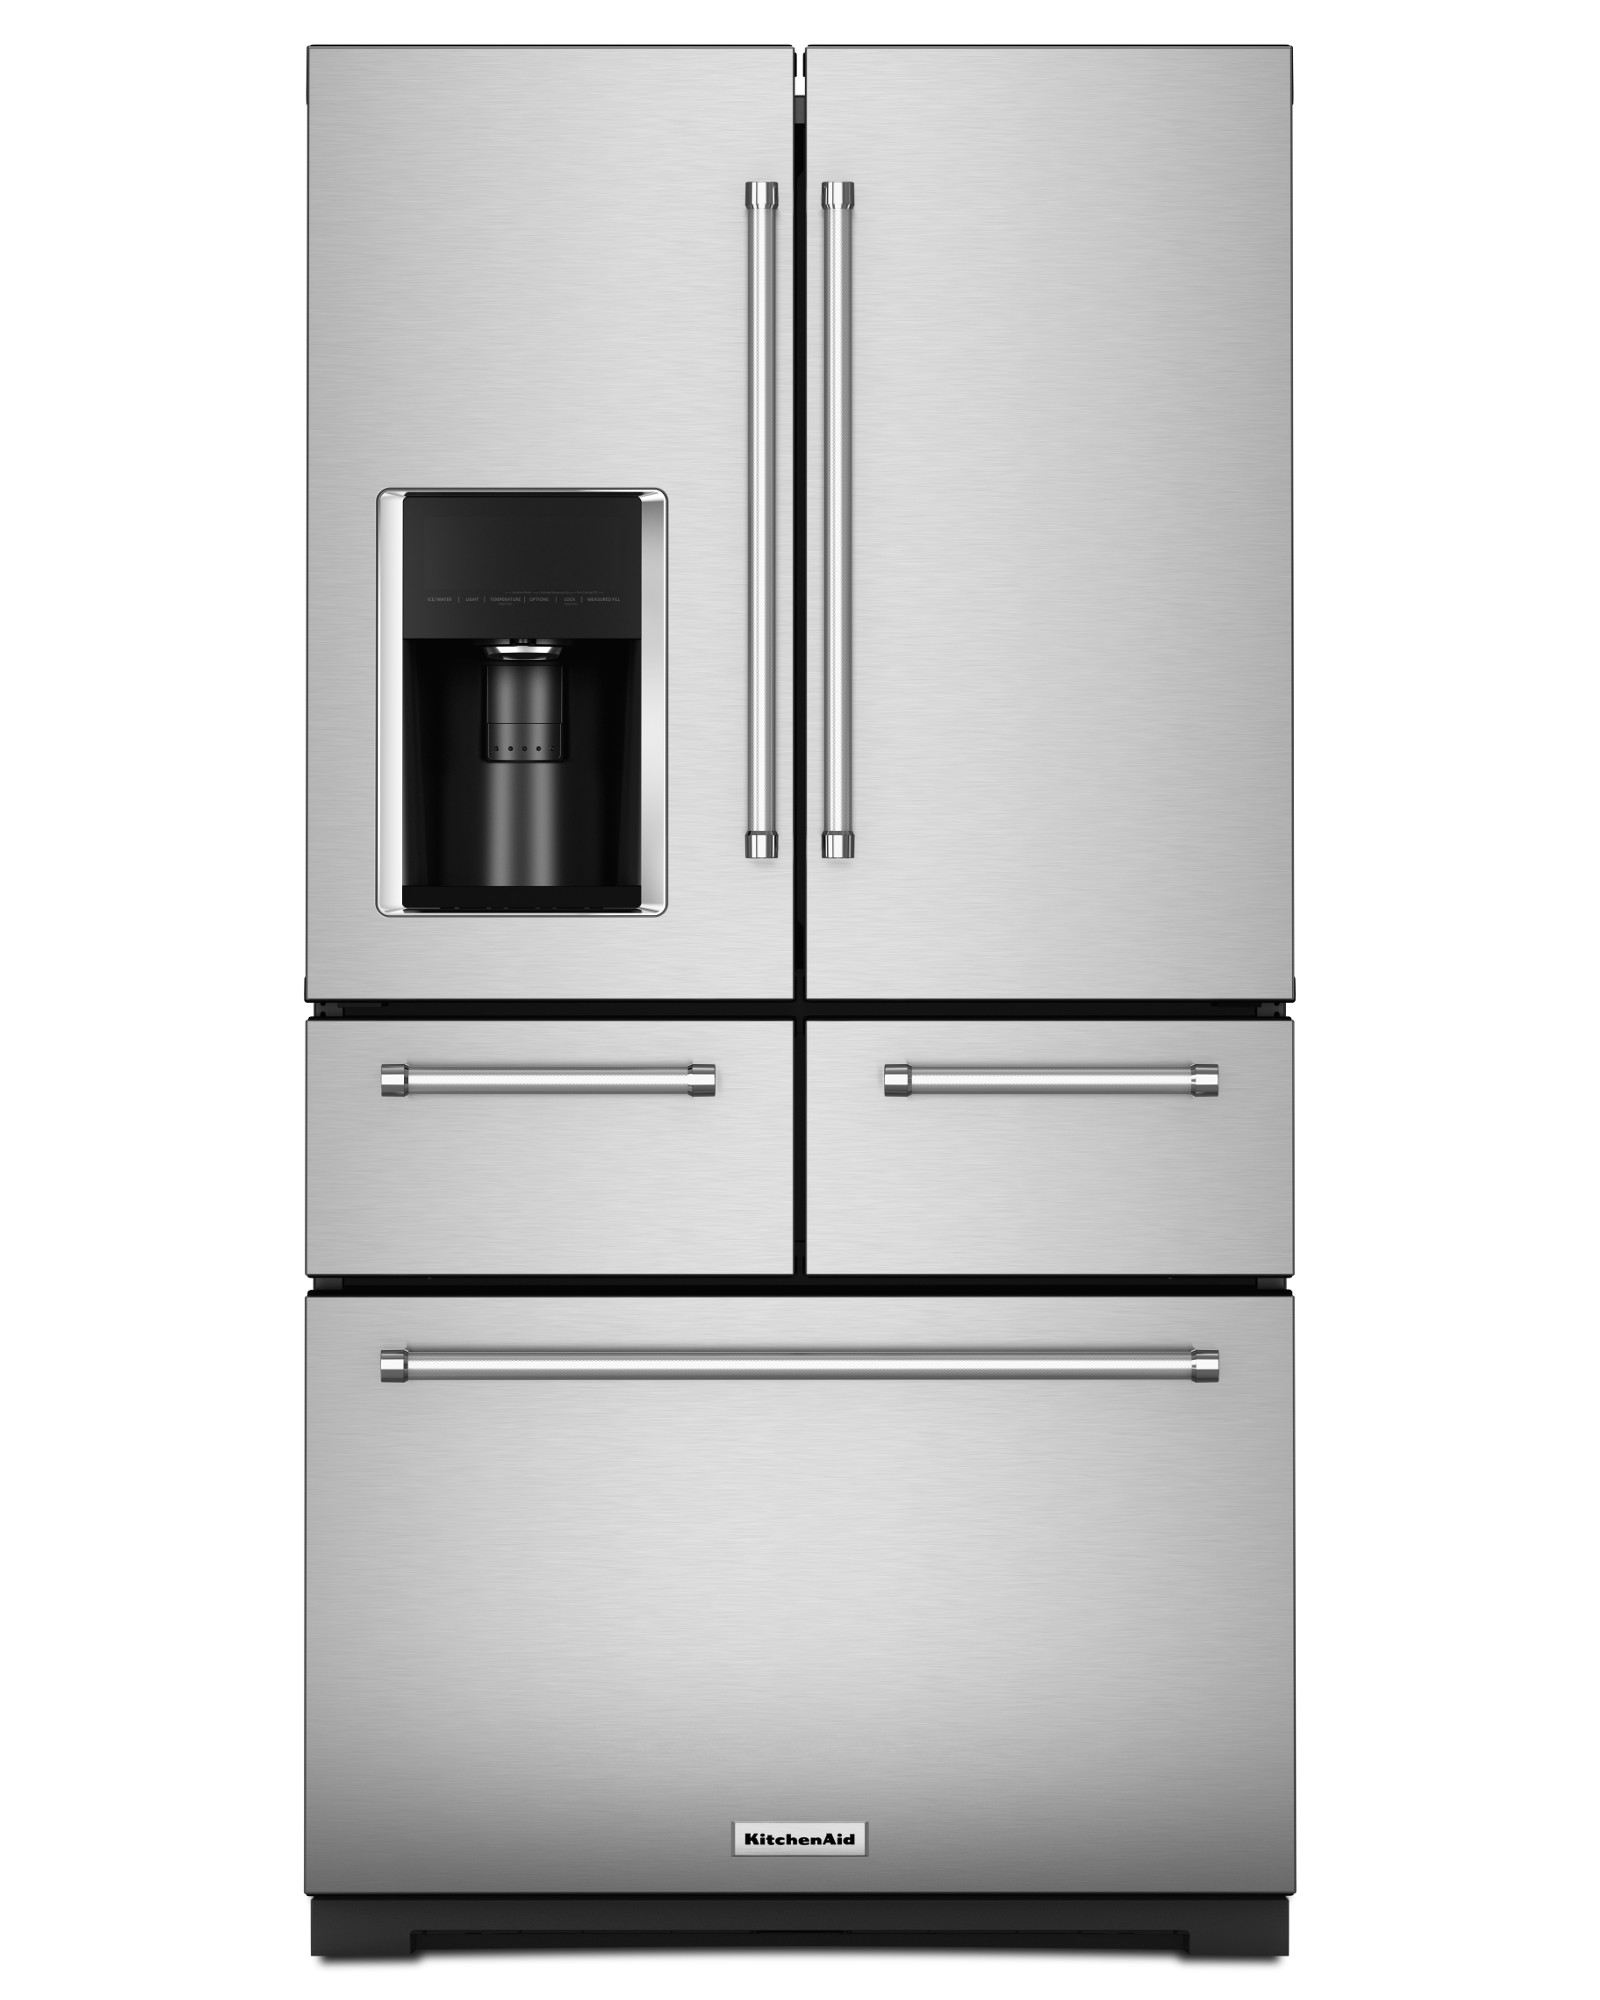 KitchenAid KRMF706ESS 25.8 cu. ft. French Door Refrigerator with 5 Shelves, 4 Door Bins, Herb Storage, 5-Door Configuration, Preserva Food Care System and Measured Water Fill